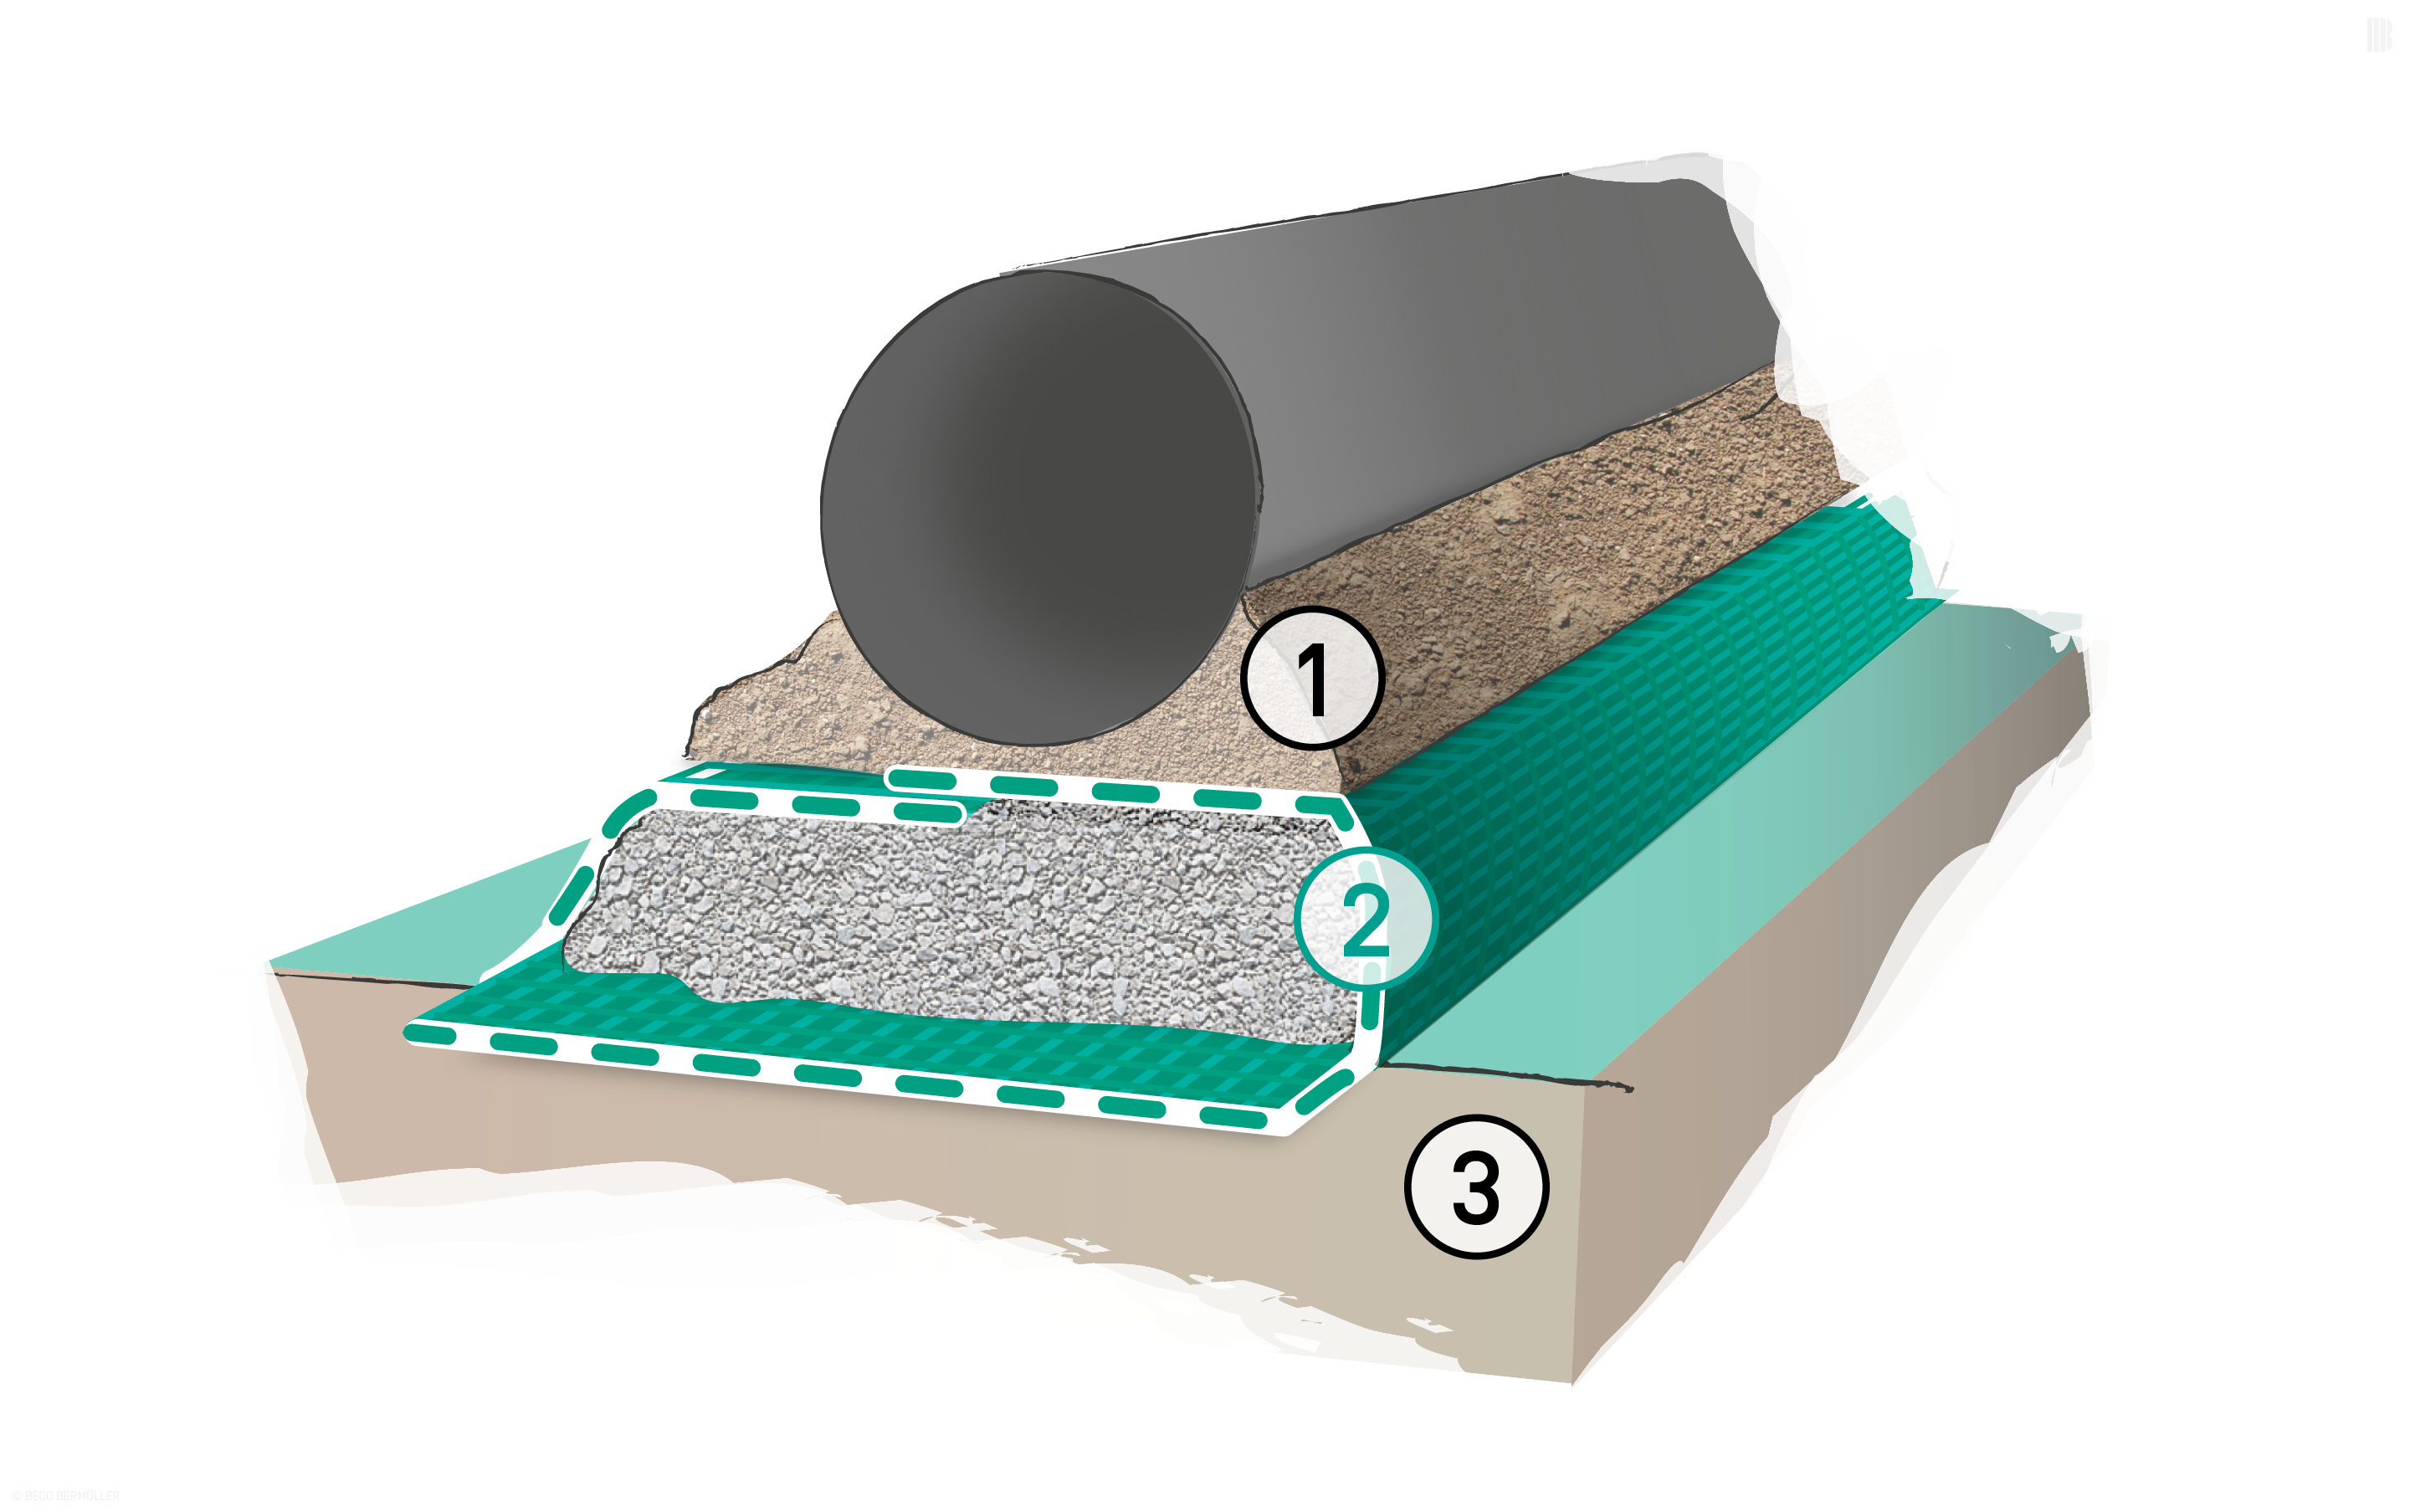 Reinforced foundation bed as a bearing layer for pipelines: 1. Pipe bedding | 2. BEFORCE Woven Geotextiles | 3. Subsoil with poor load-bearing capacity